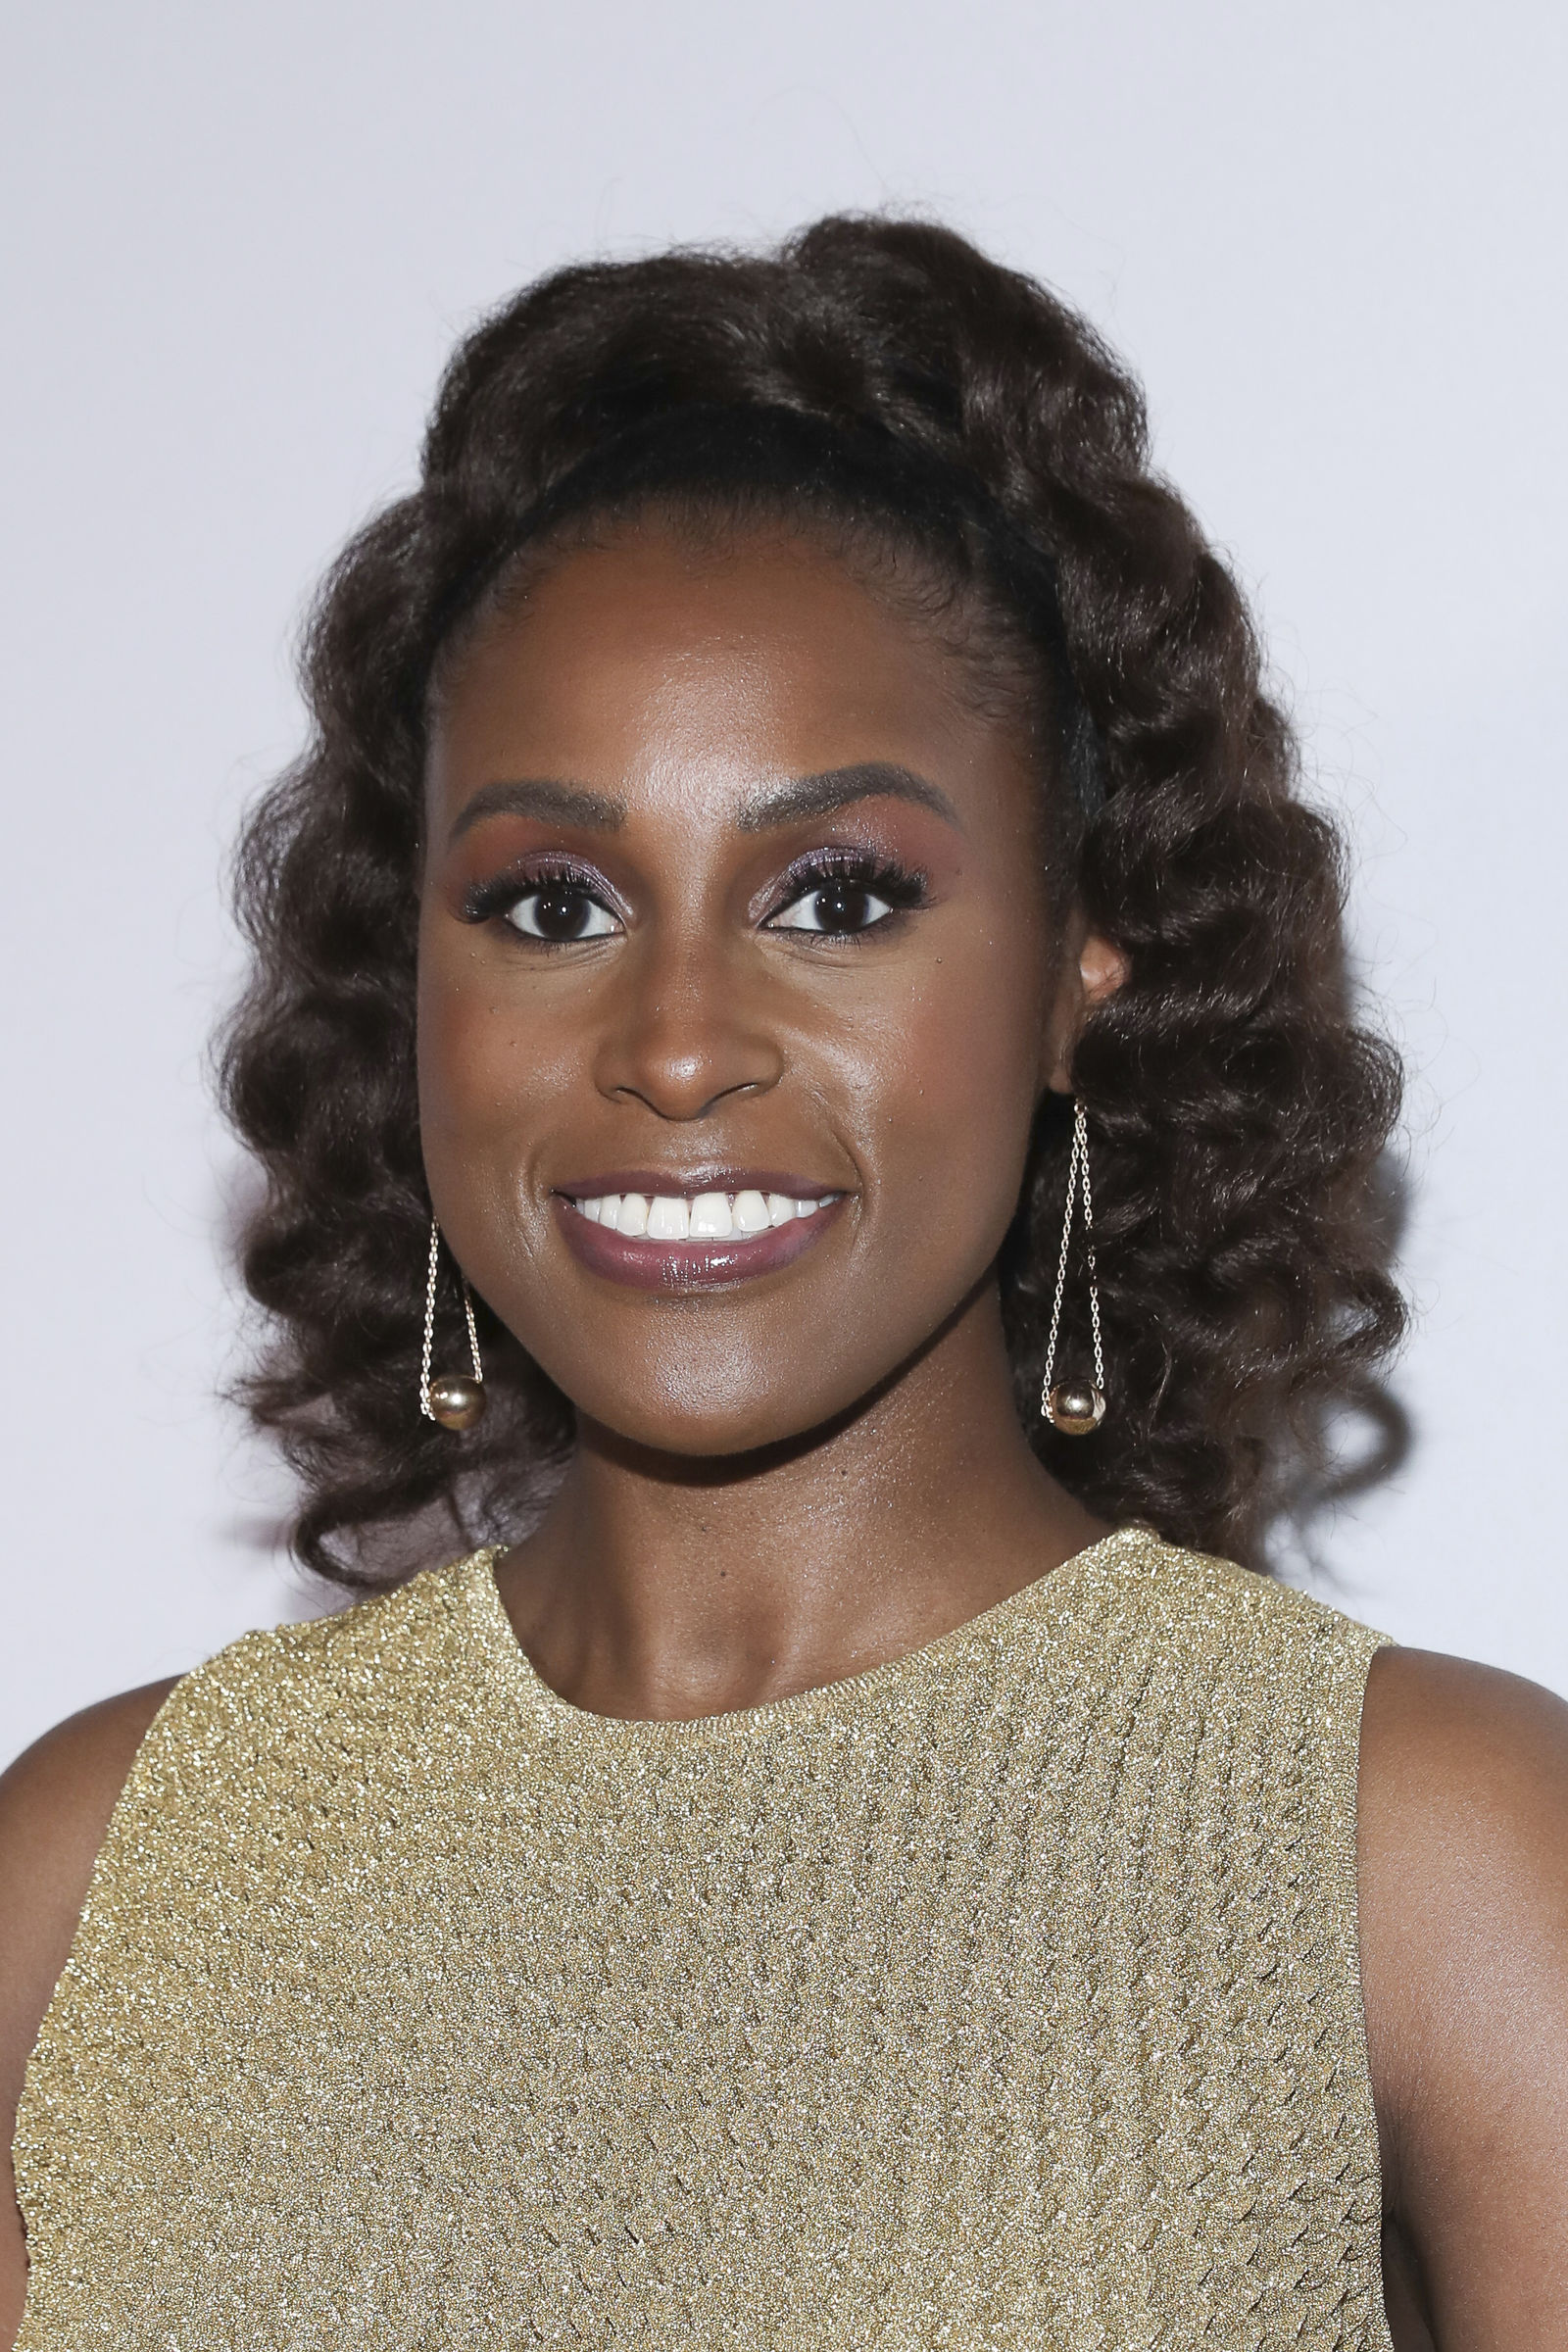 Issa Rae attends the 11th Annual AAFCA Awards at the Taglyan Complex on Wednesday, Jan. 22, 2020, in Los Angeles. (Photo by Mark Von Holden /Invision/AP)